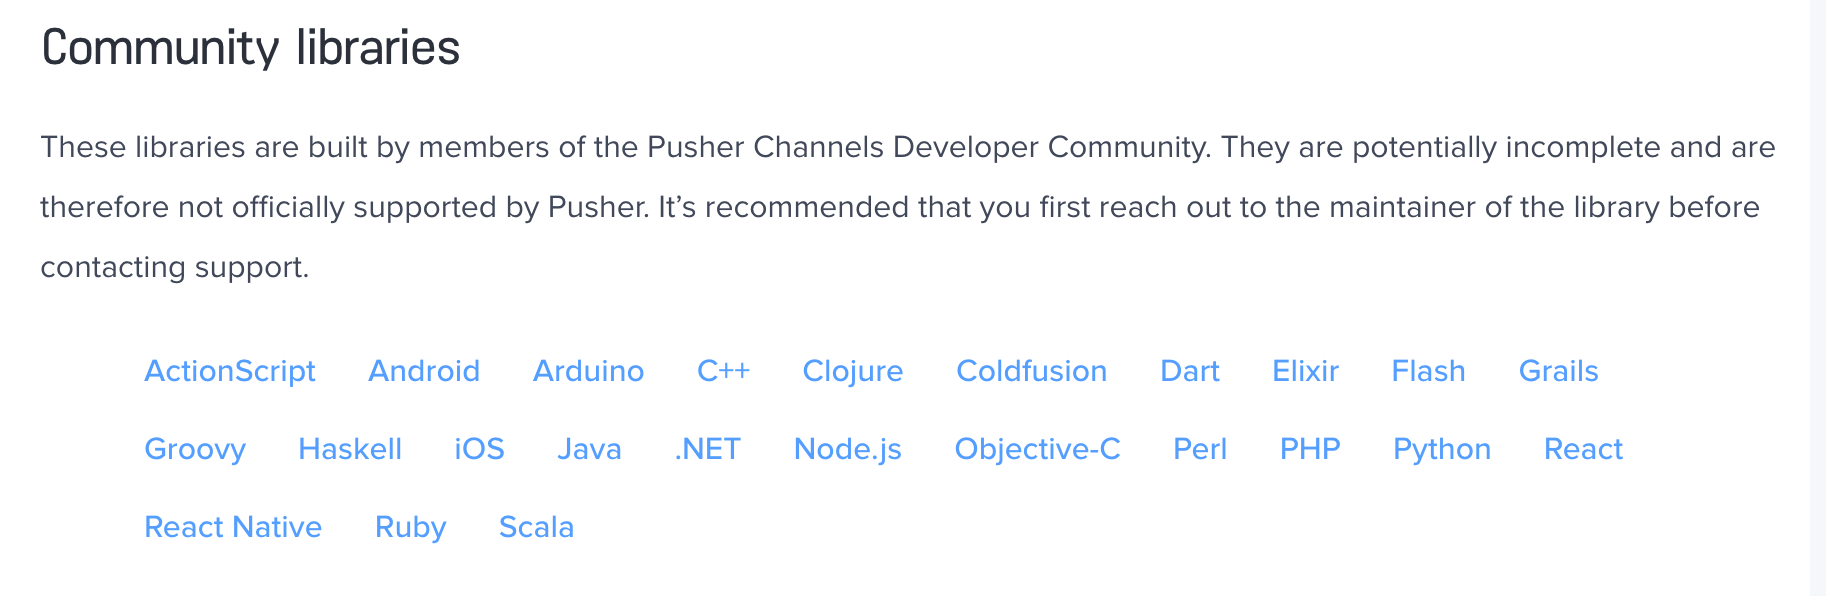 Should our developer experience (DX) be build on top of API